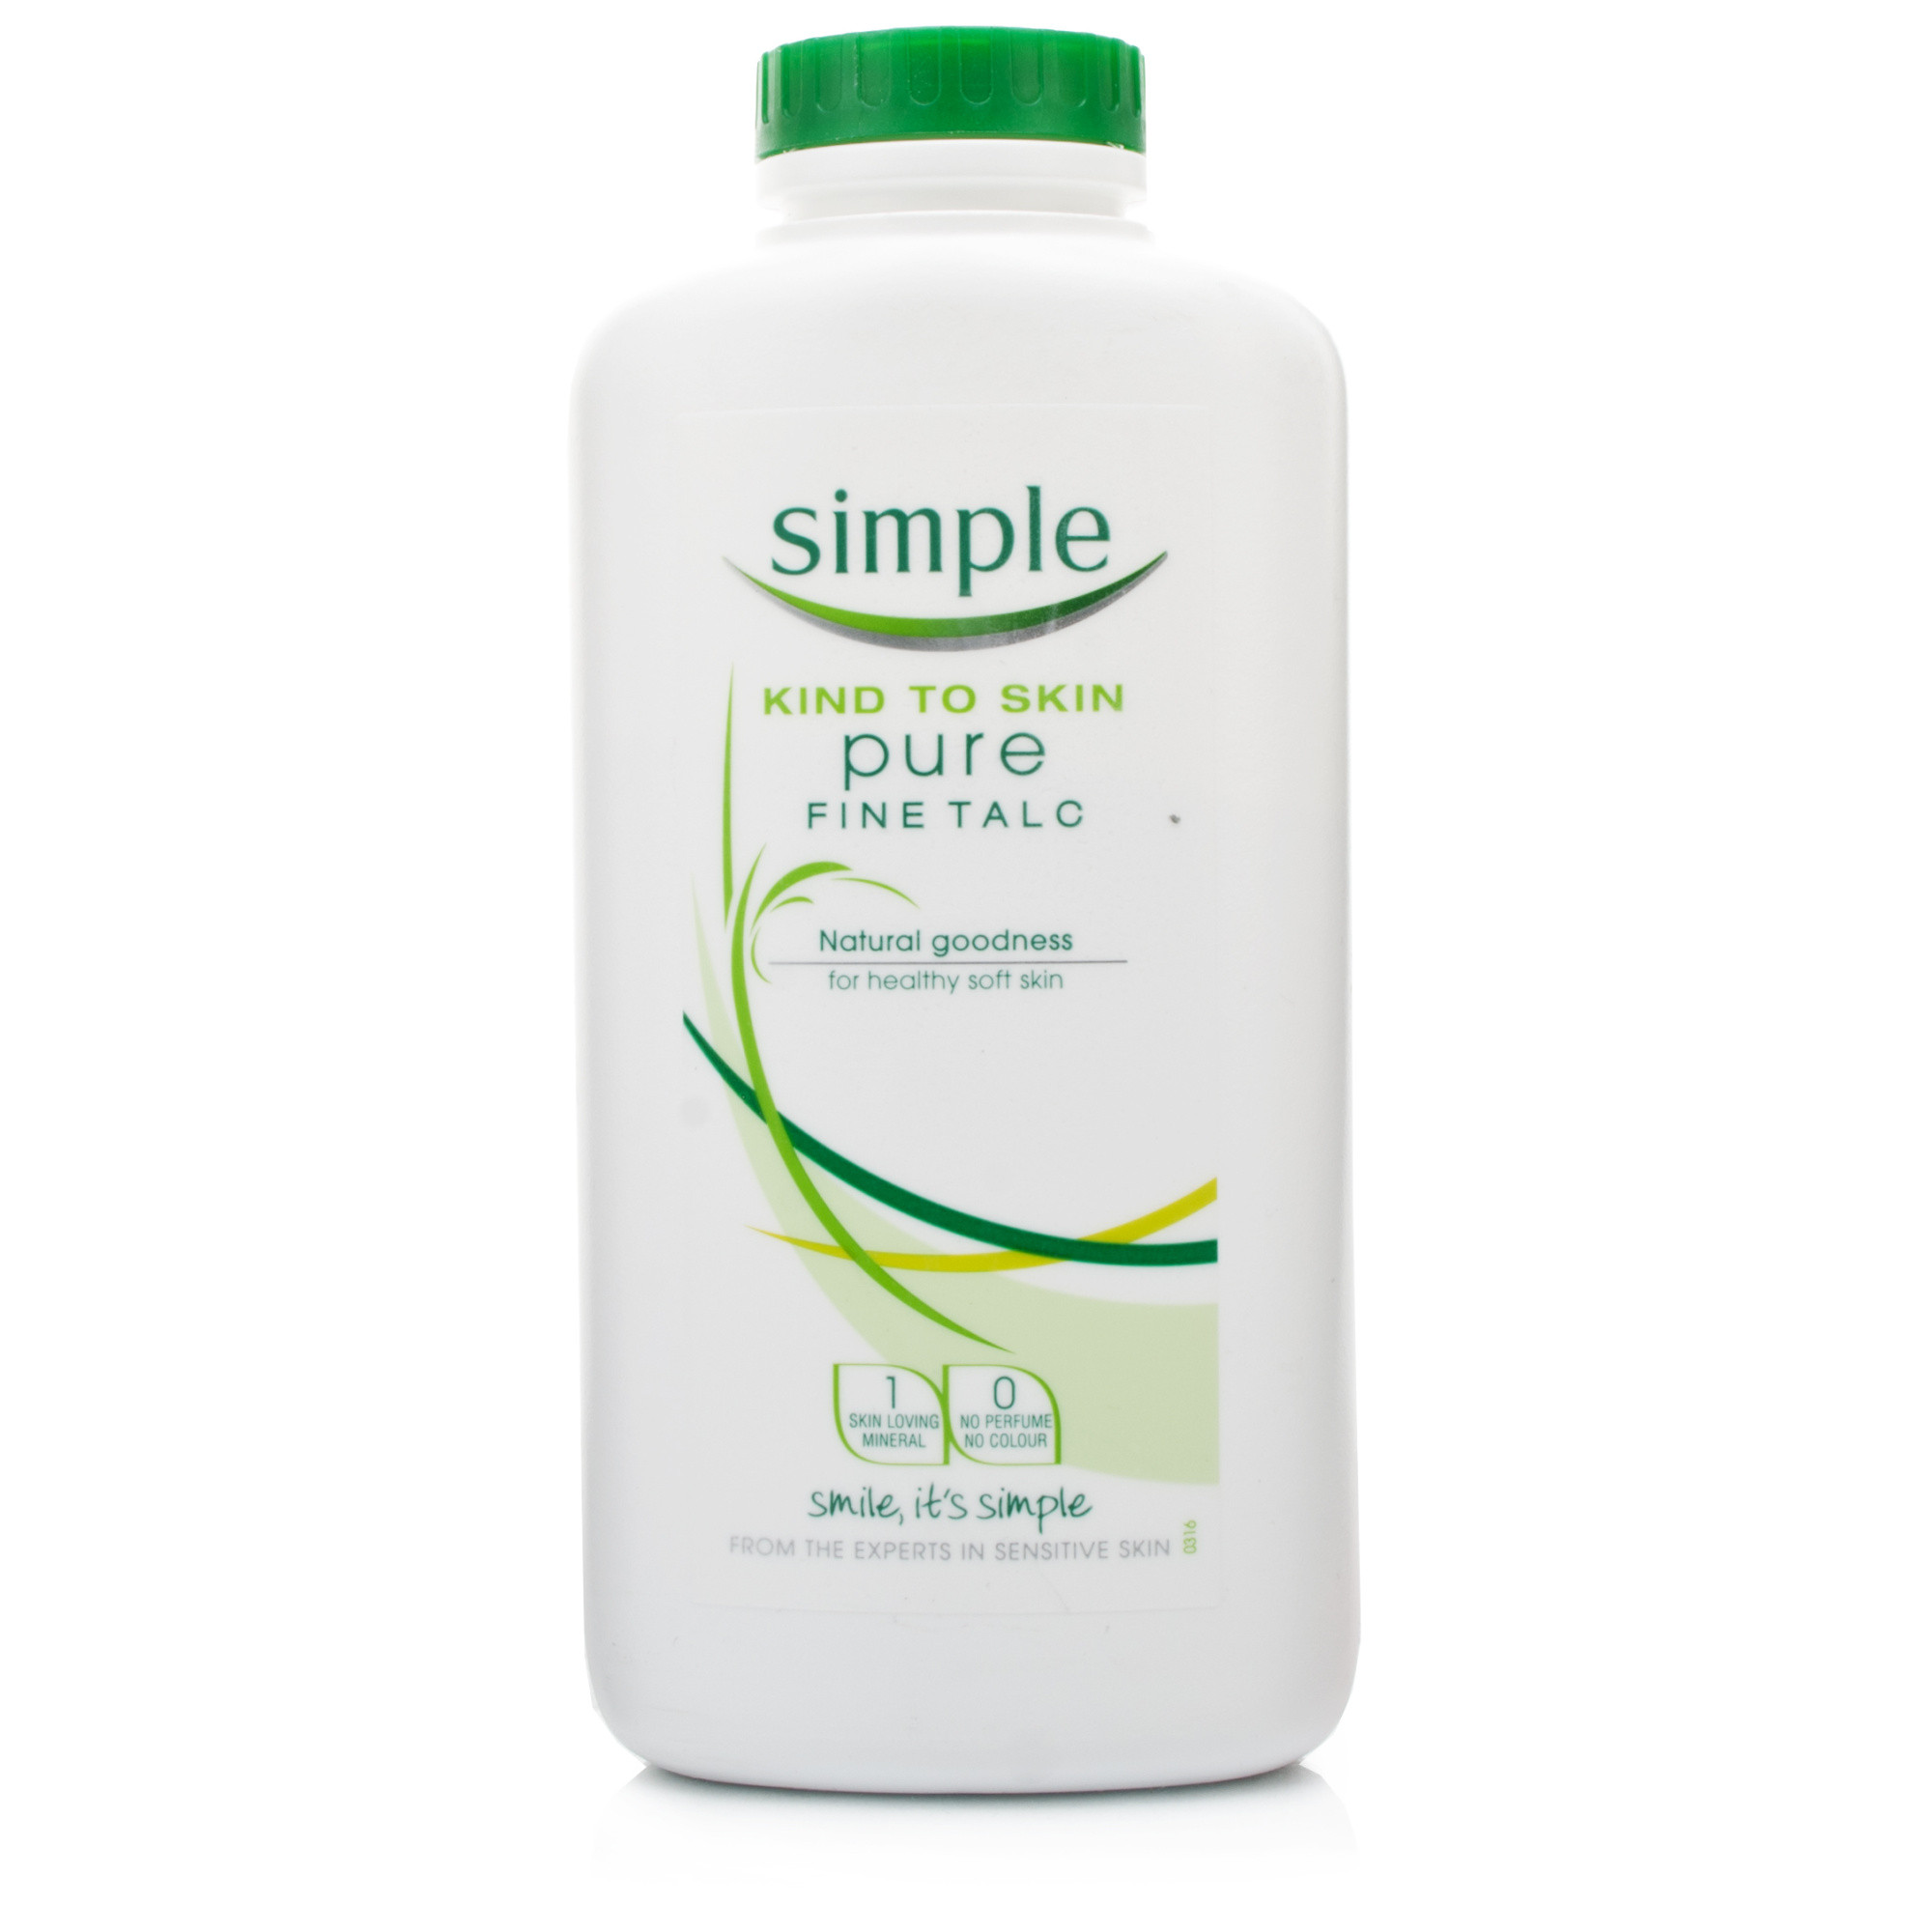 Simple Pure Fine Talc